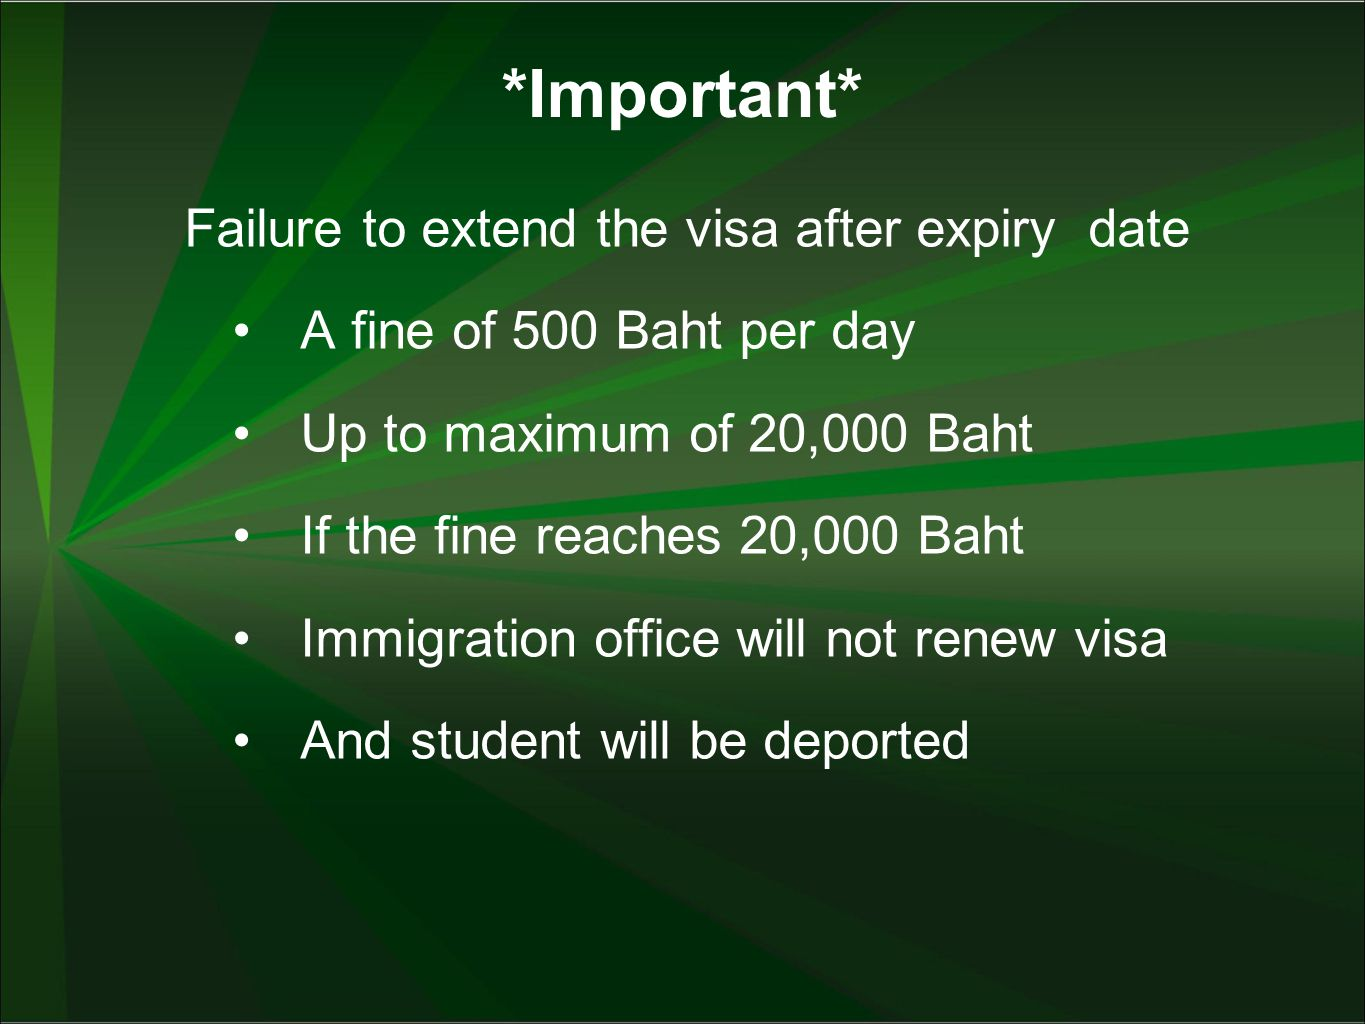 Safe-keeping of Passport – Non-Thai students must keep passport at GRU – A GRU card will be given in exchange of student's passport – Student can keep a copy of the passport, while the original will be in GRU safekeeping – GRU card is required whenever student takes the passport from GRU